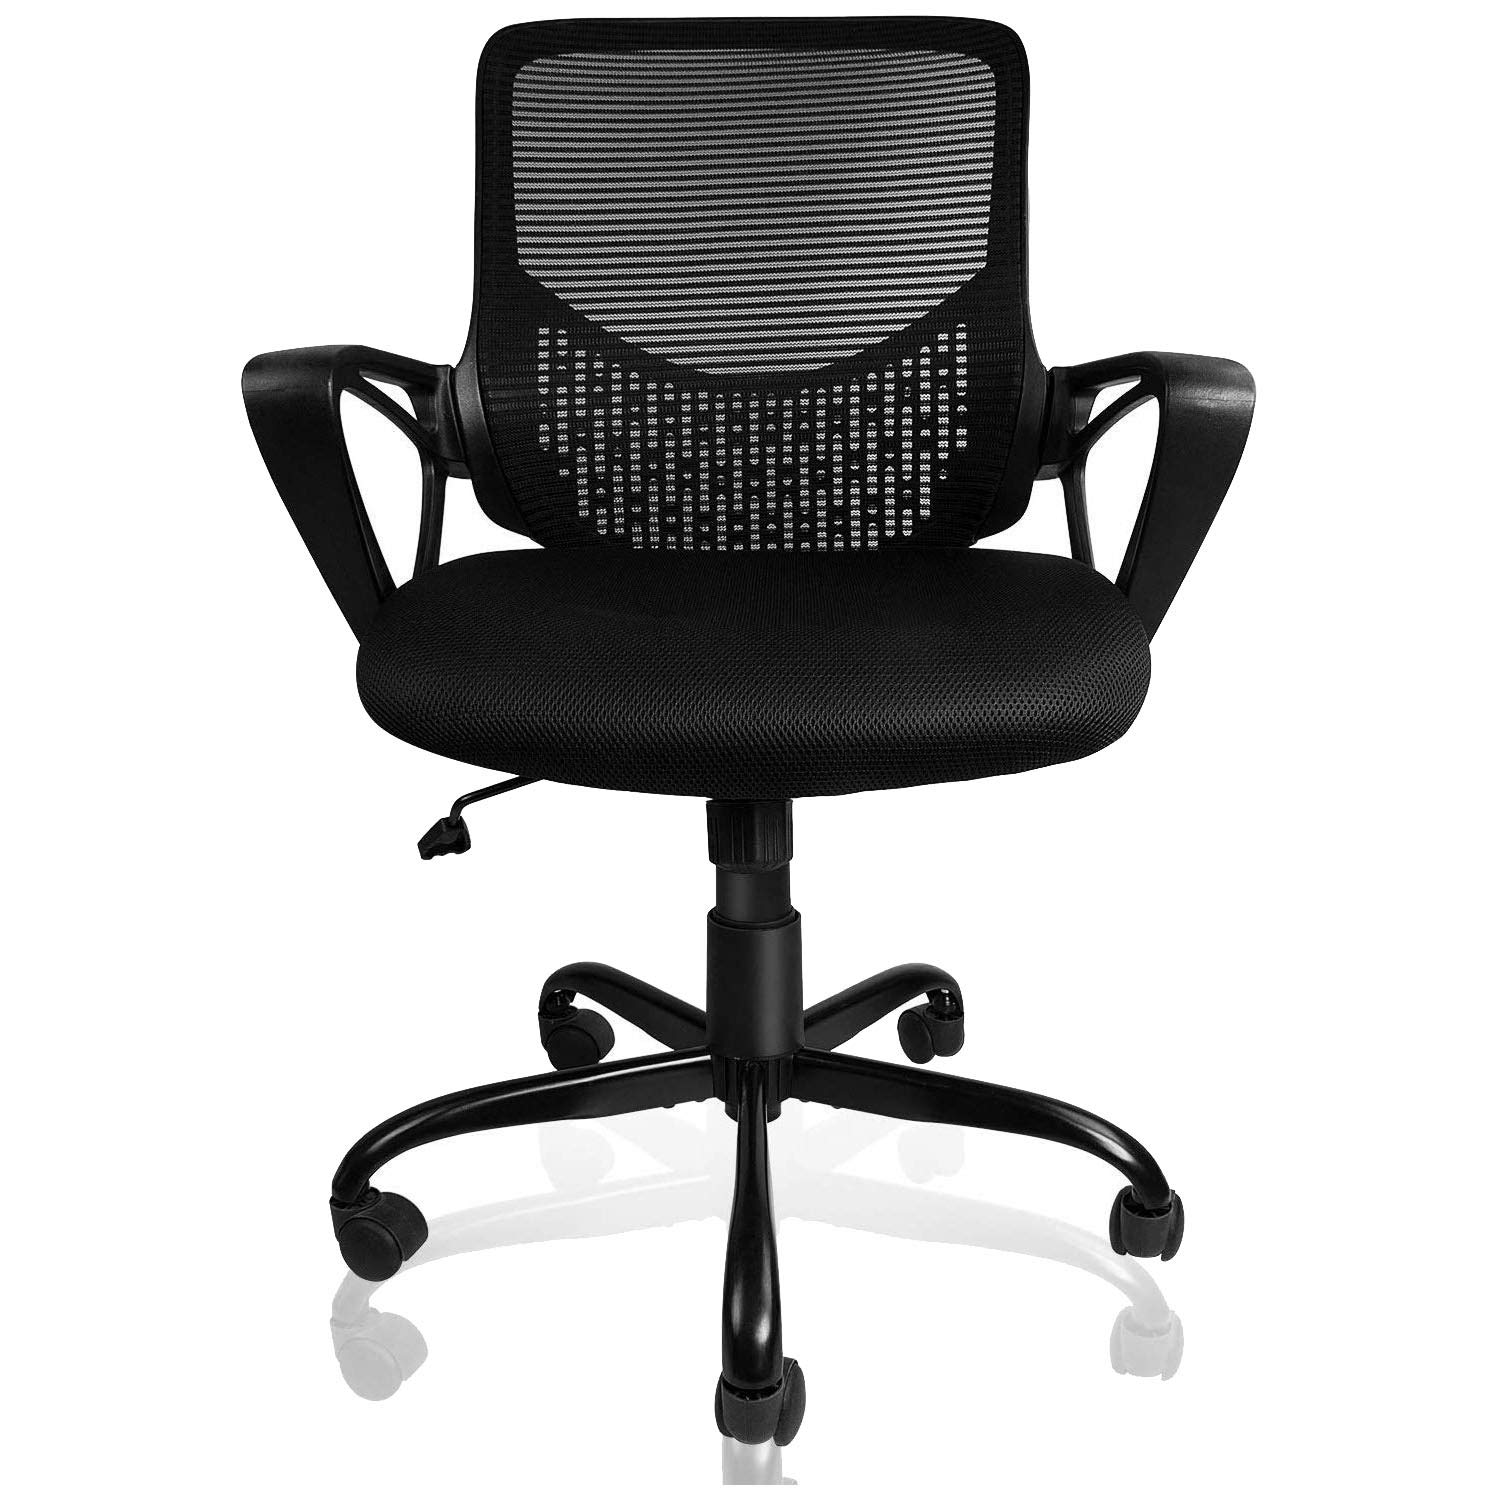 SmugOffice Office Chair, Computer Desk Chairs for Conference Room Home Office with Armrests Ergonomic Lumbar Support Comfortable Mesh Task Chair, Black by SmugOffice